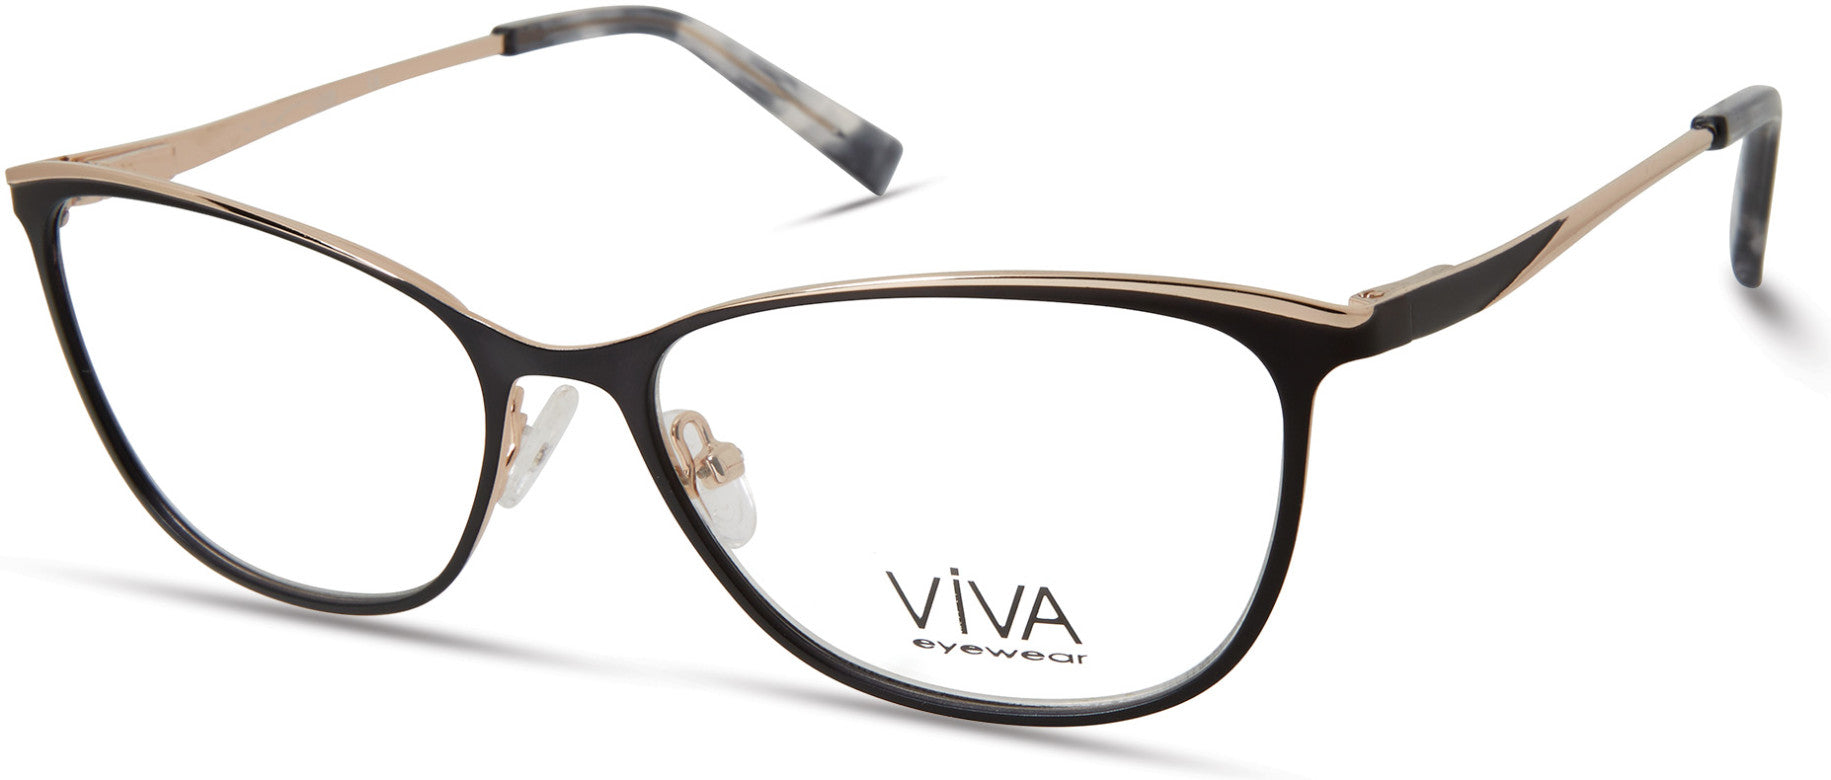 Viva VV4521 Rectangular Eyeglasses For Women